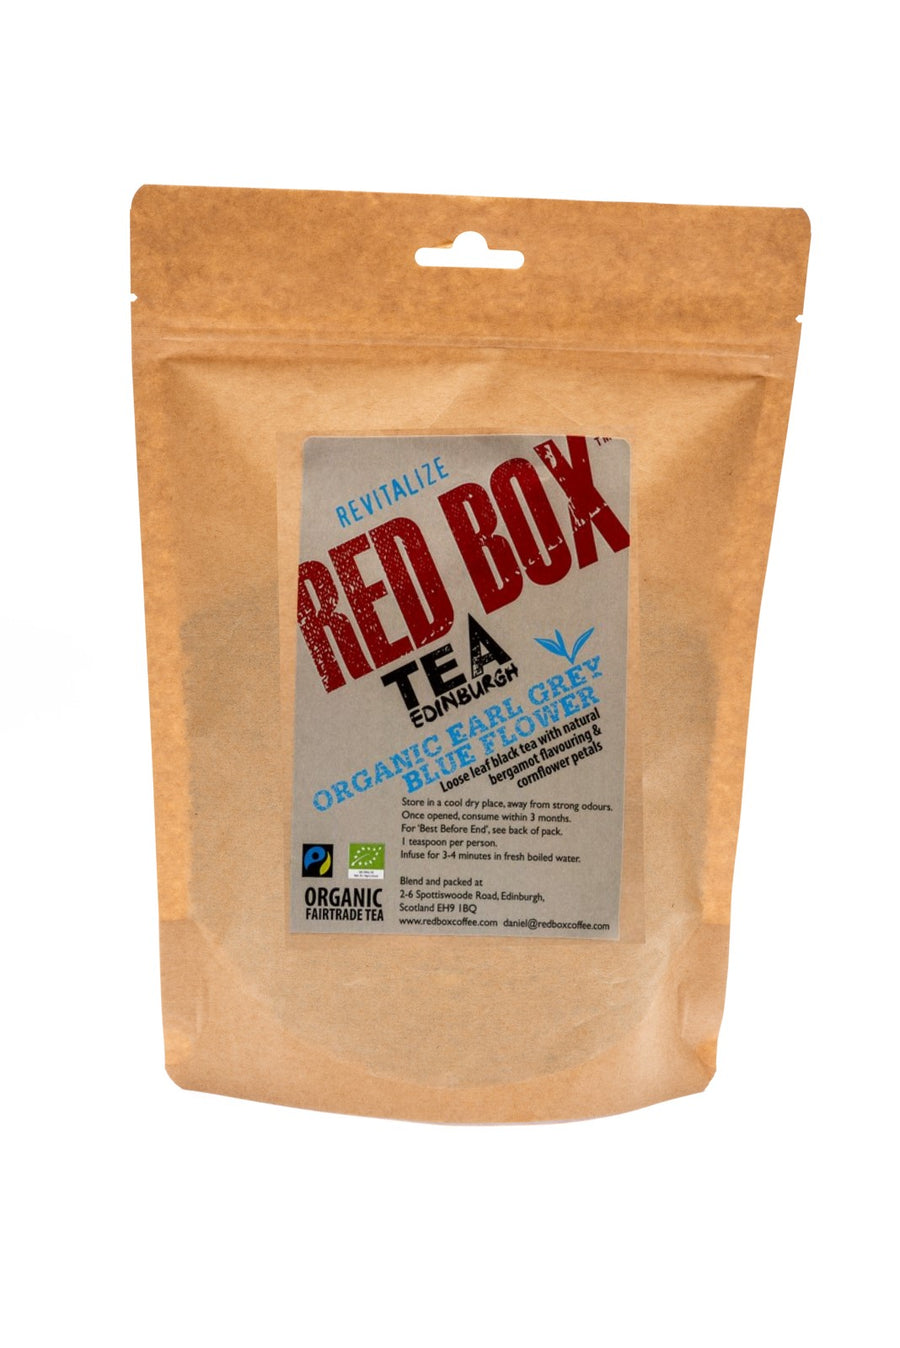 Red Box Tea Organic Earl Grey Blue Flower Bio Tea Bags